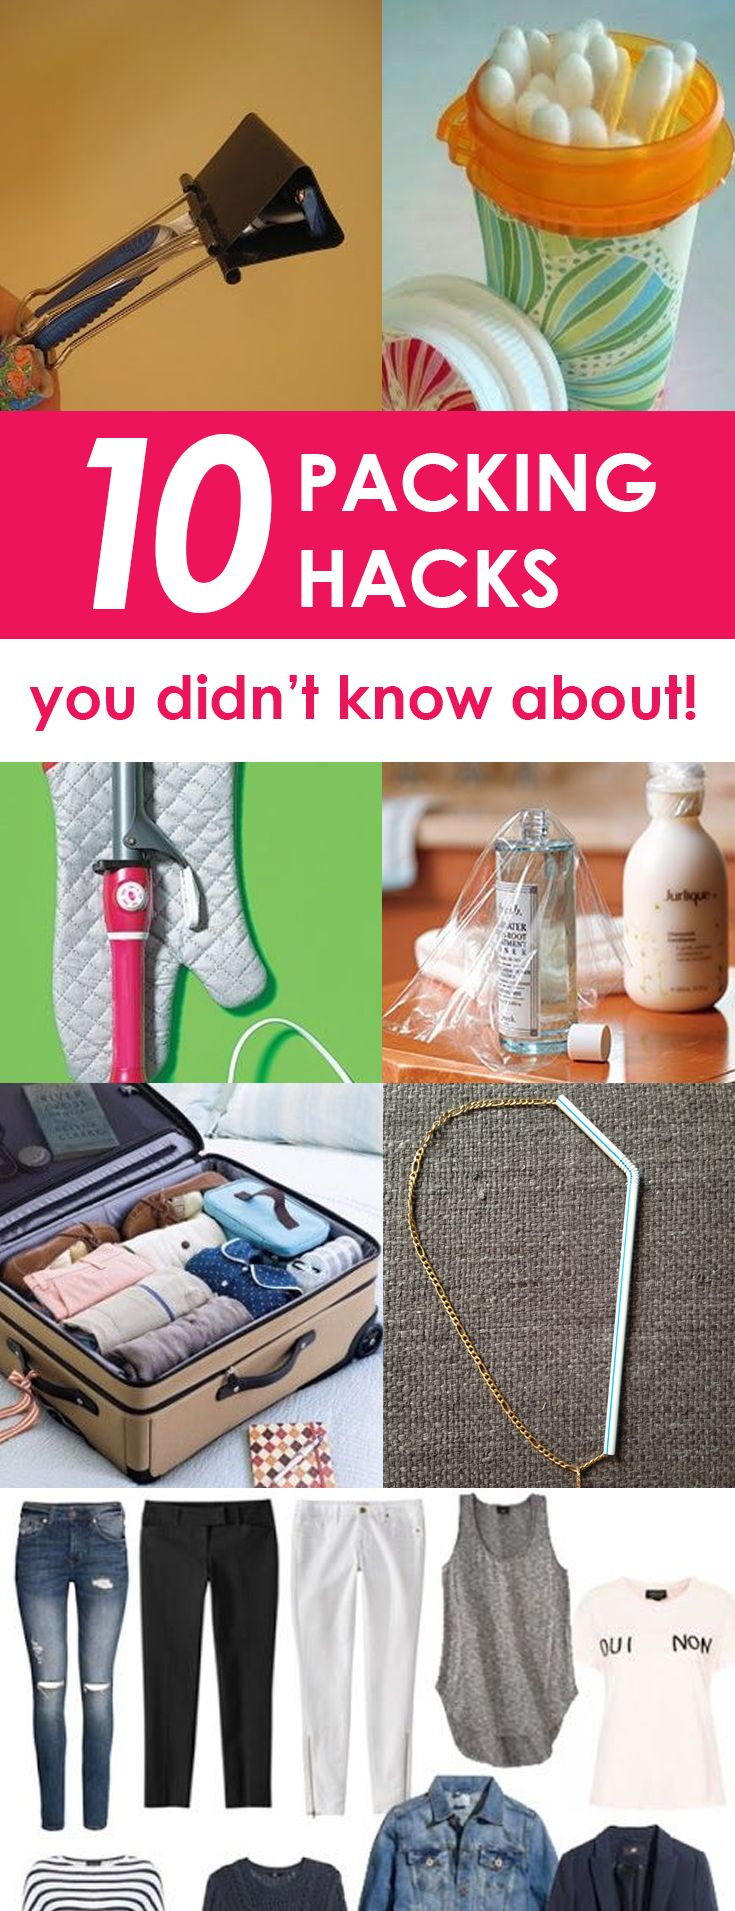 Now that winter break is here, it's time to travel! Packing hacks can really help make your travel plans a little less stressful. Whether you're traveling by car or plane, here are 10 packing hacks to help make your trip a bit easier! 1. Store Q-tips...